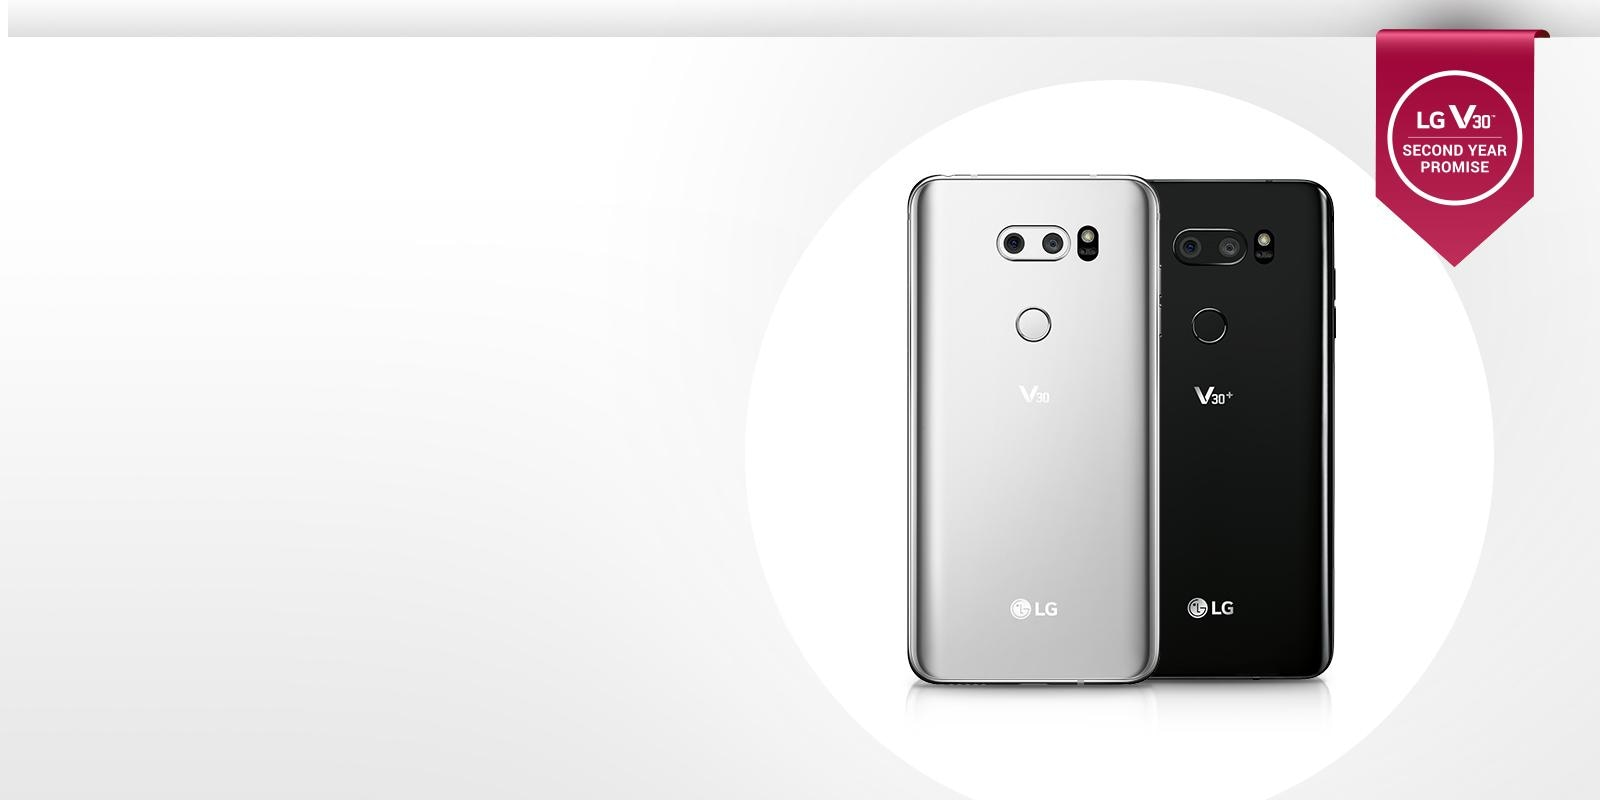 LG T-Mobile Cell Phones | LG USA